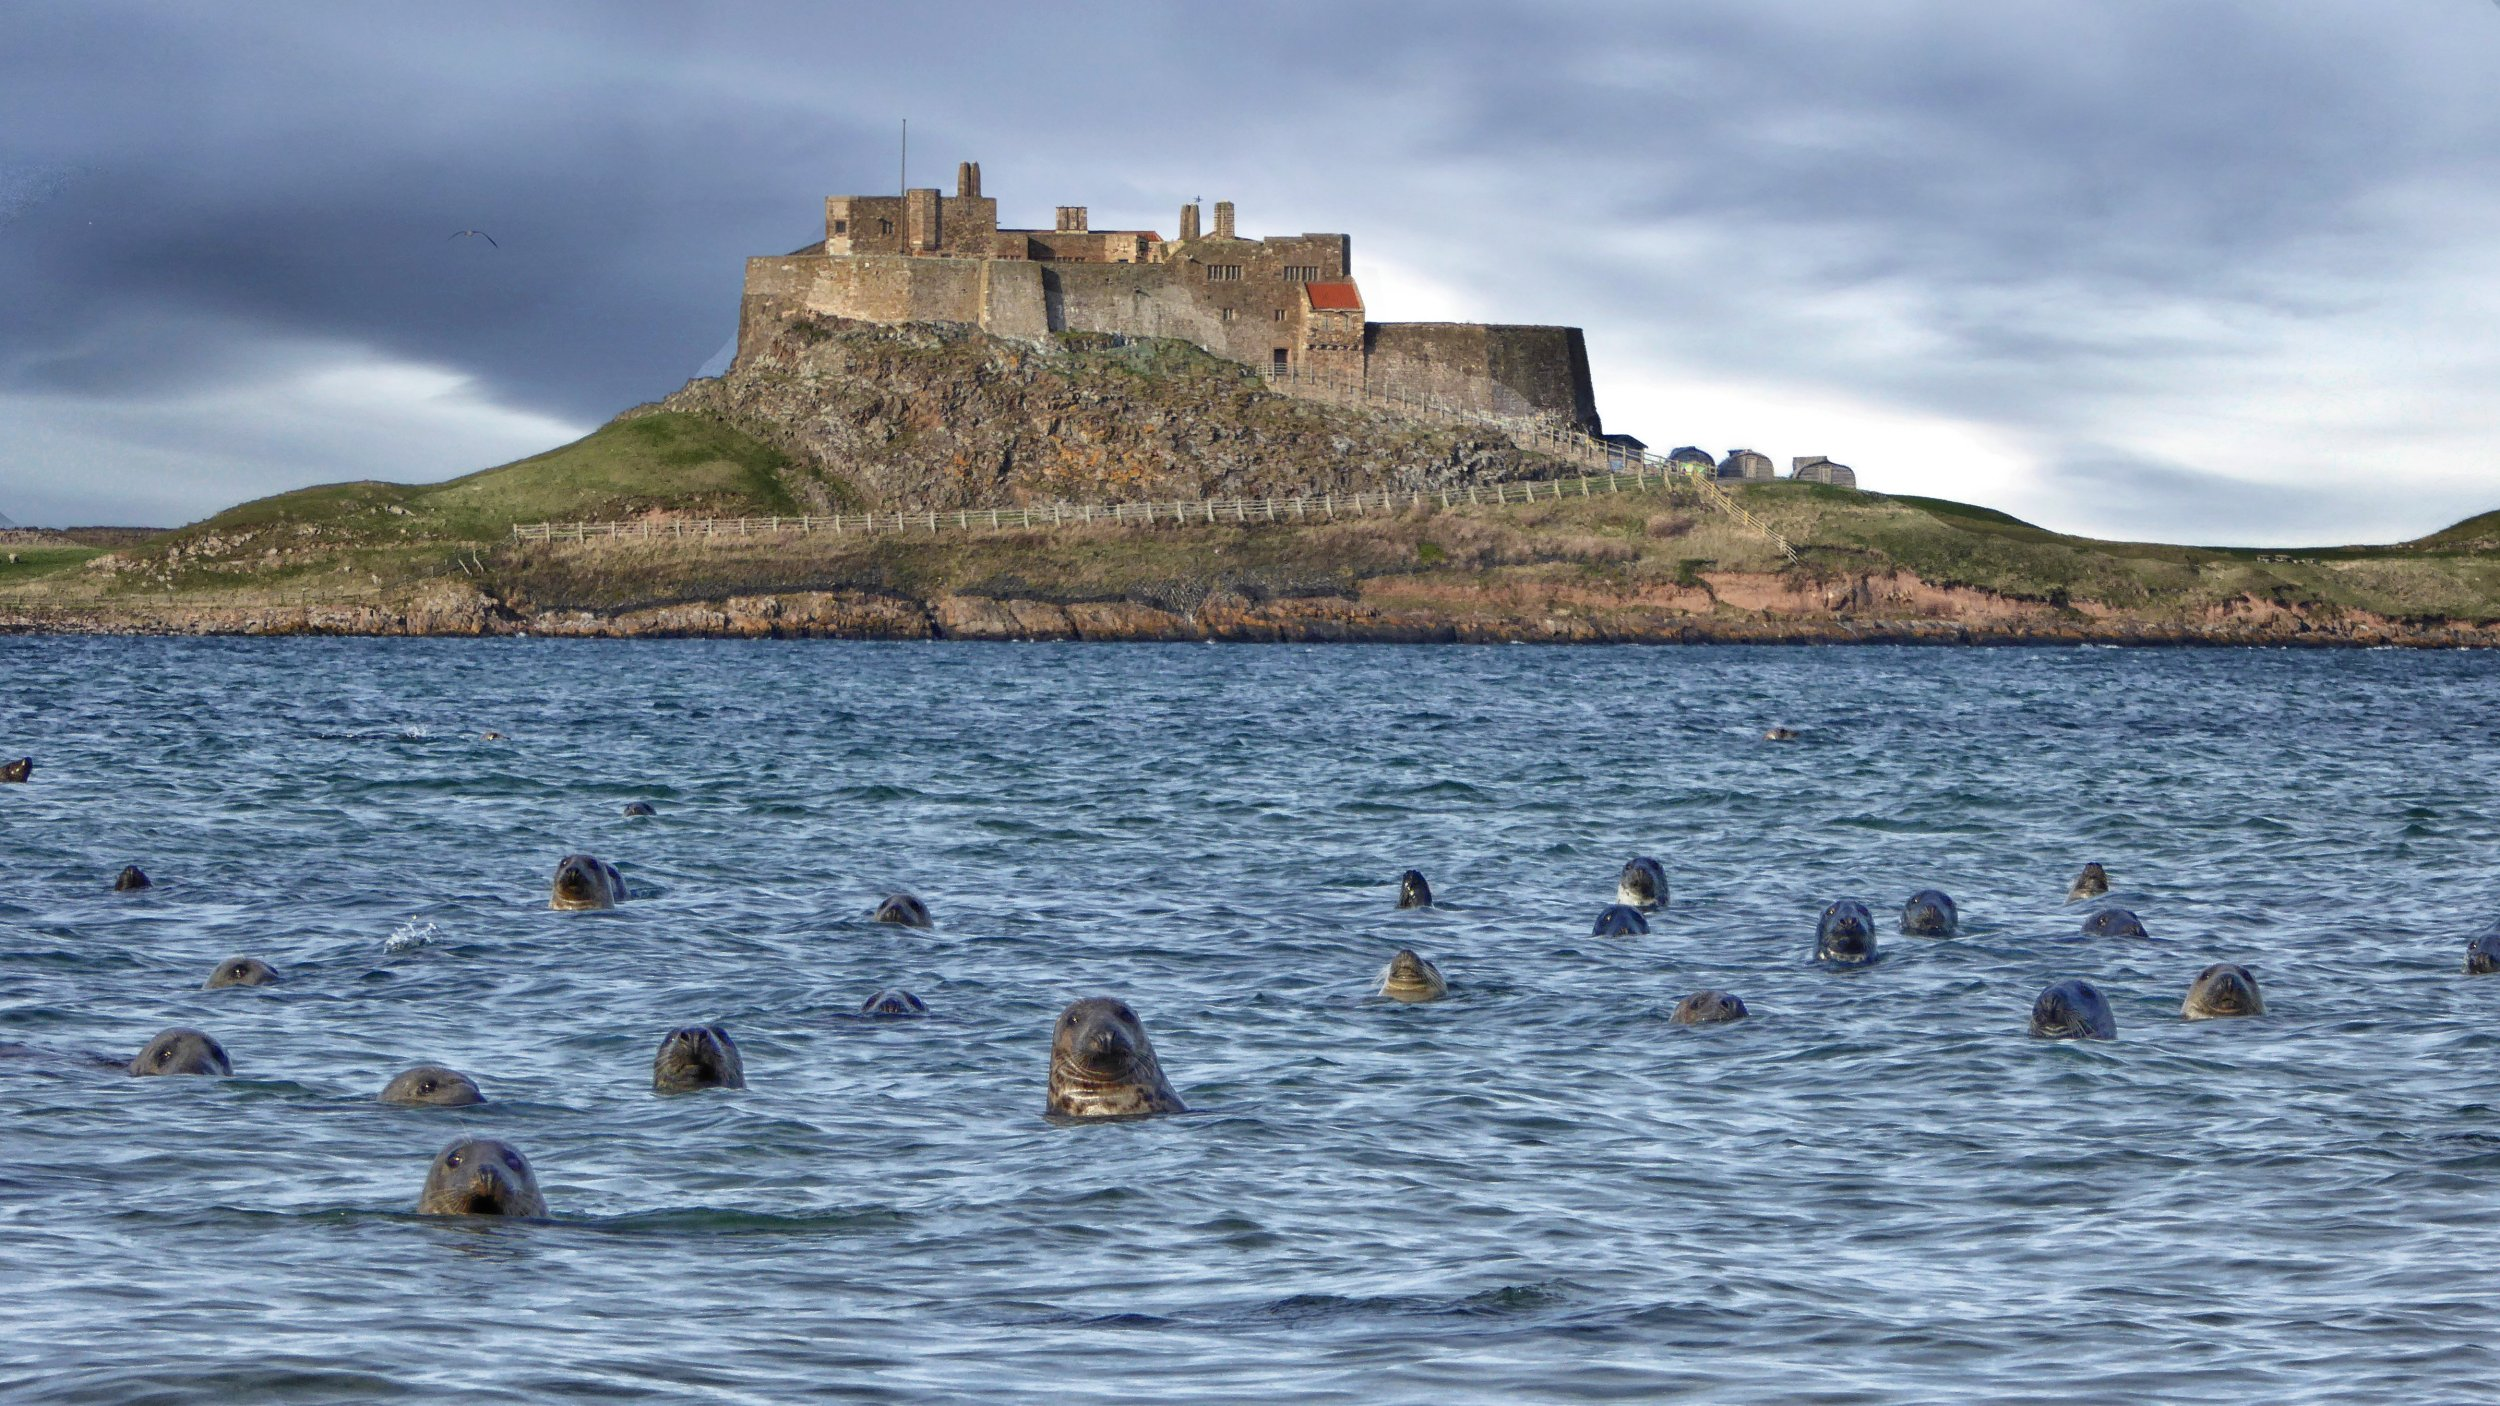 Seals photobomb man's picture – how many can you see?